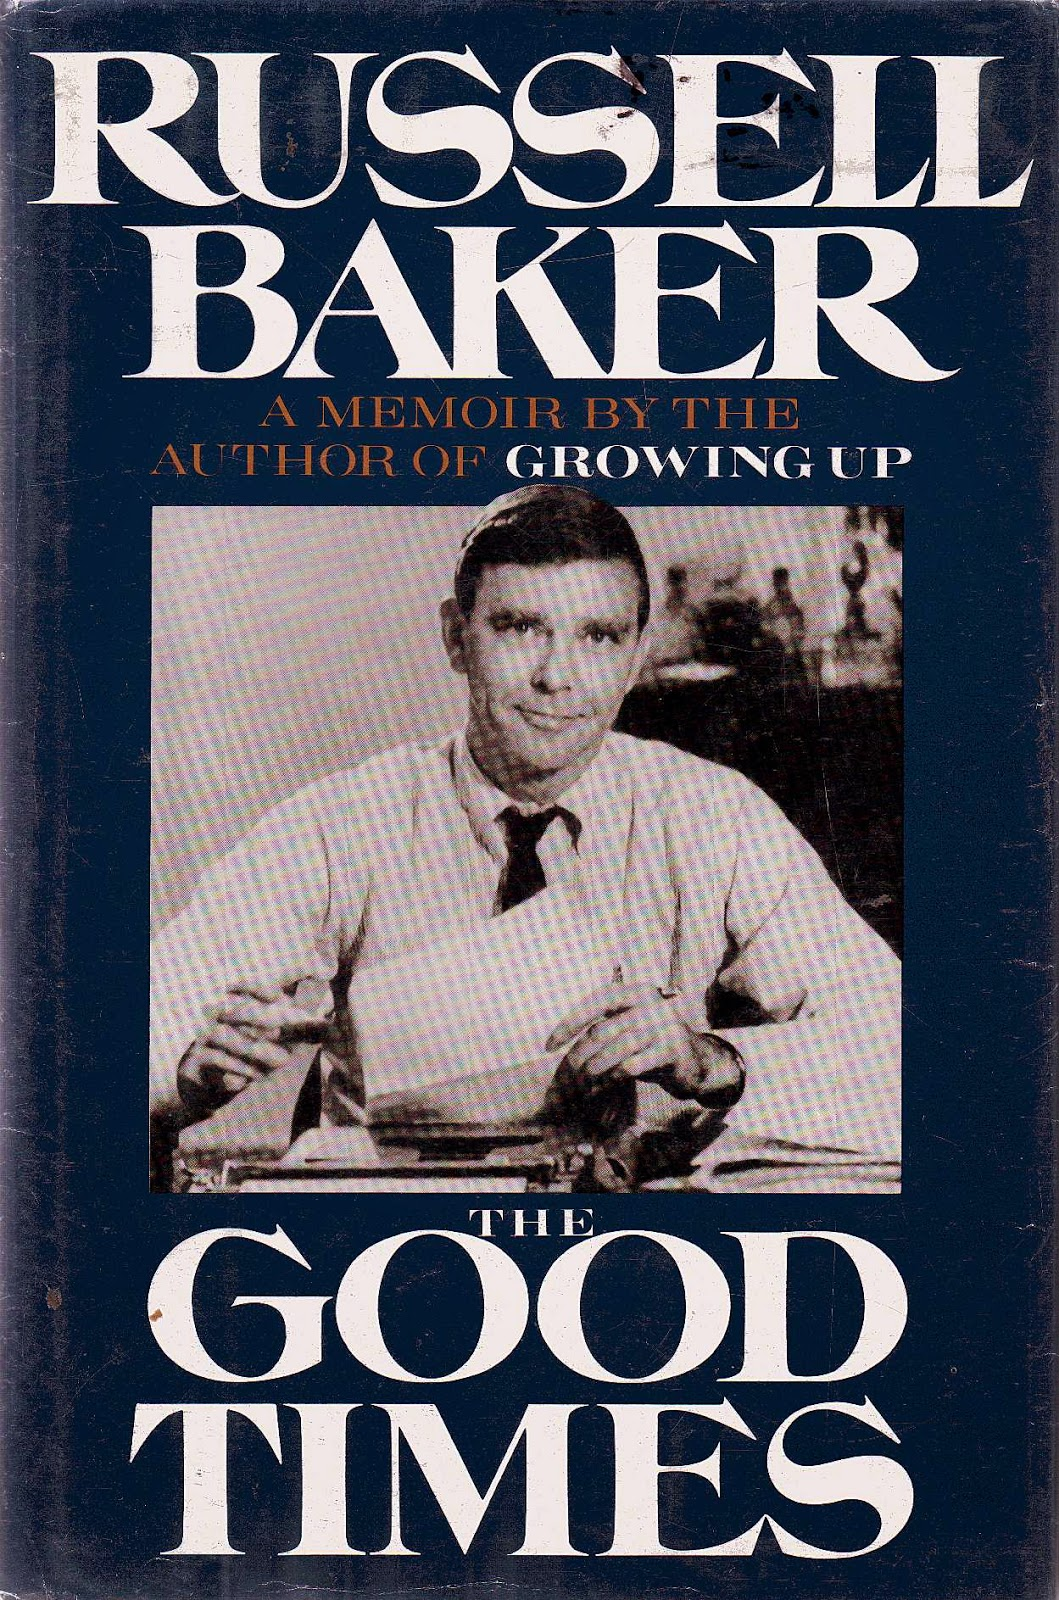 review of russell bakers growing up Born within months of each other, both raised under constant scrutiny by powerful grandparents, both made into vehicles for their mothers' repressed artistic ambitions: the early histories of george melly and russell baker run strikingly in parallel.